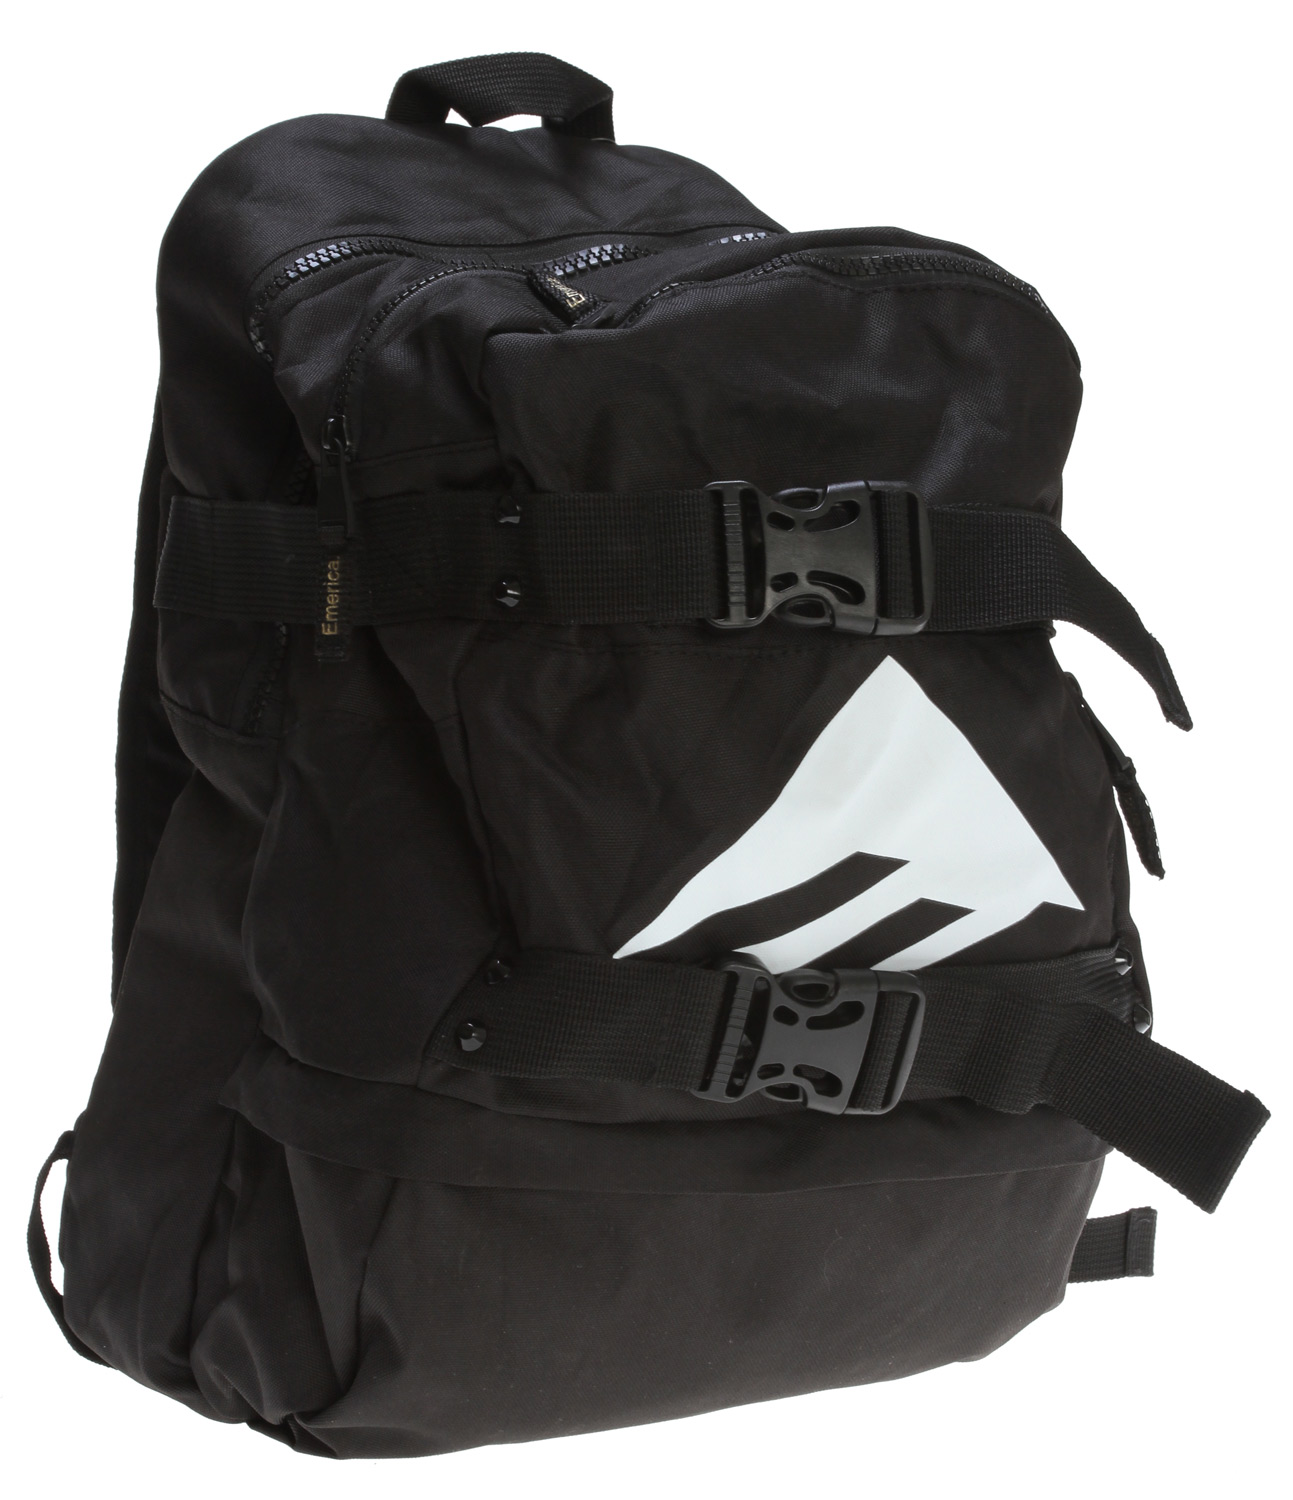 "Skateboard Key Features of the Emerica Invincible Backpack: 17.5"" x 11.5"" x 8"" 600D backpack Multi compartments Cooler pocket lined with tarpaulin Skate straps Interior laptop sleeve Direct print and embroidery - $40.95"